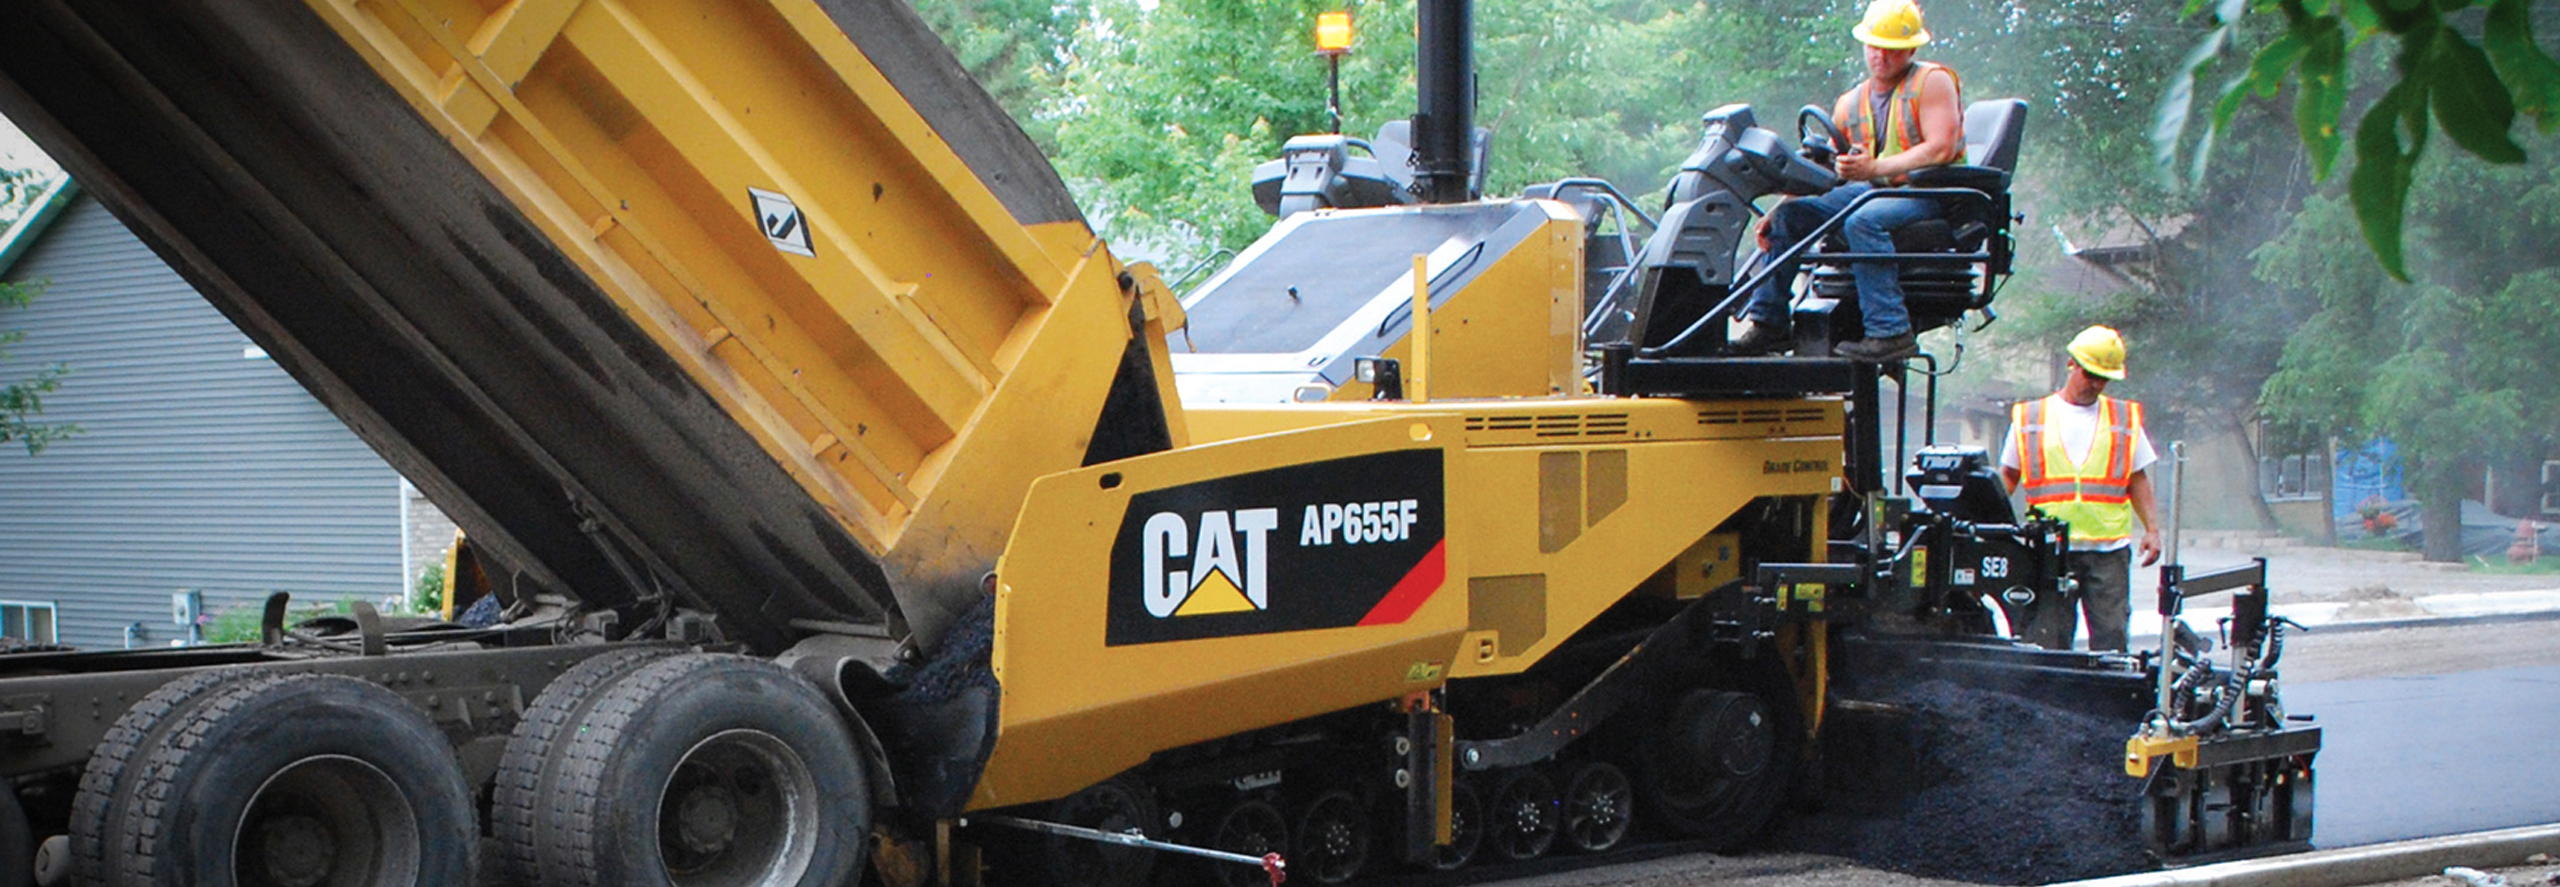 Cat-paving-AP655F